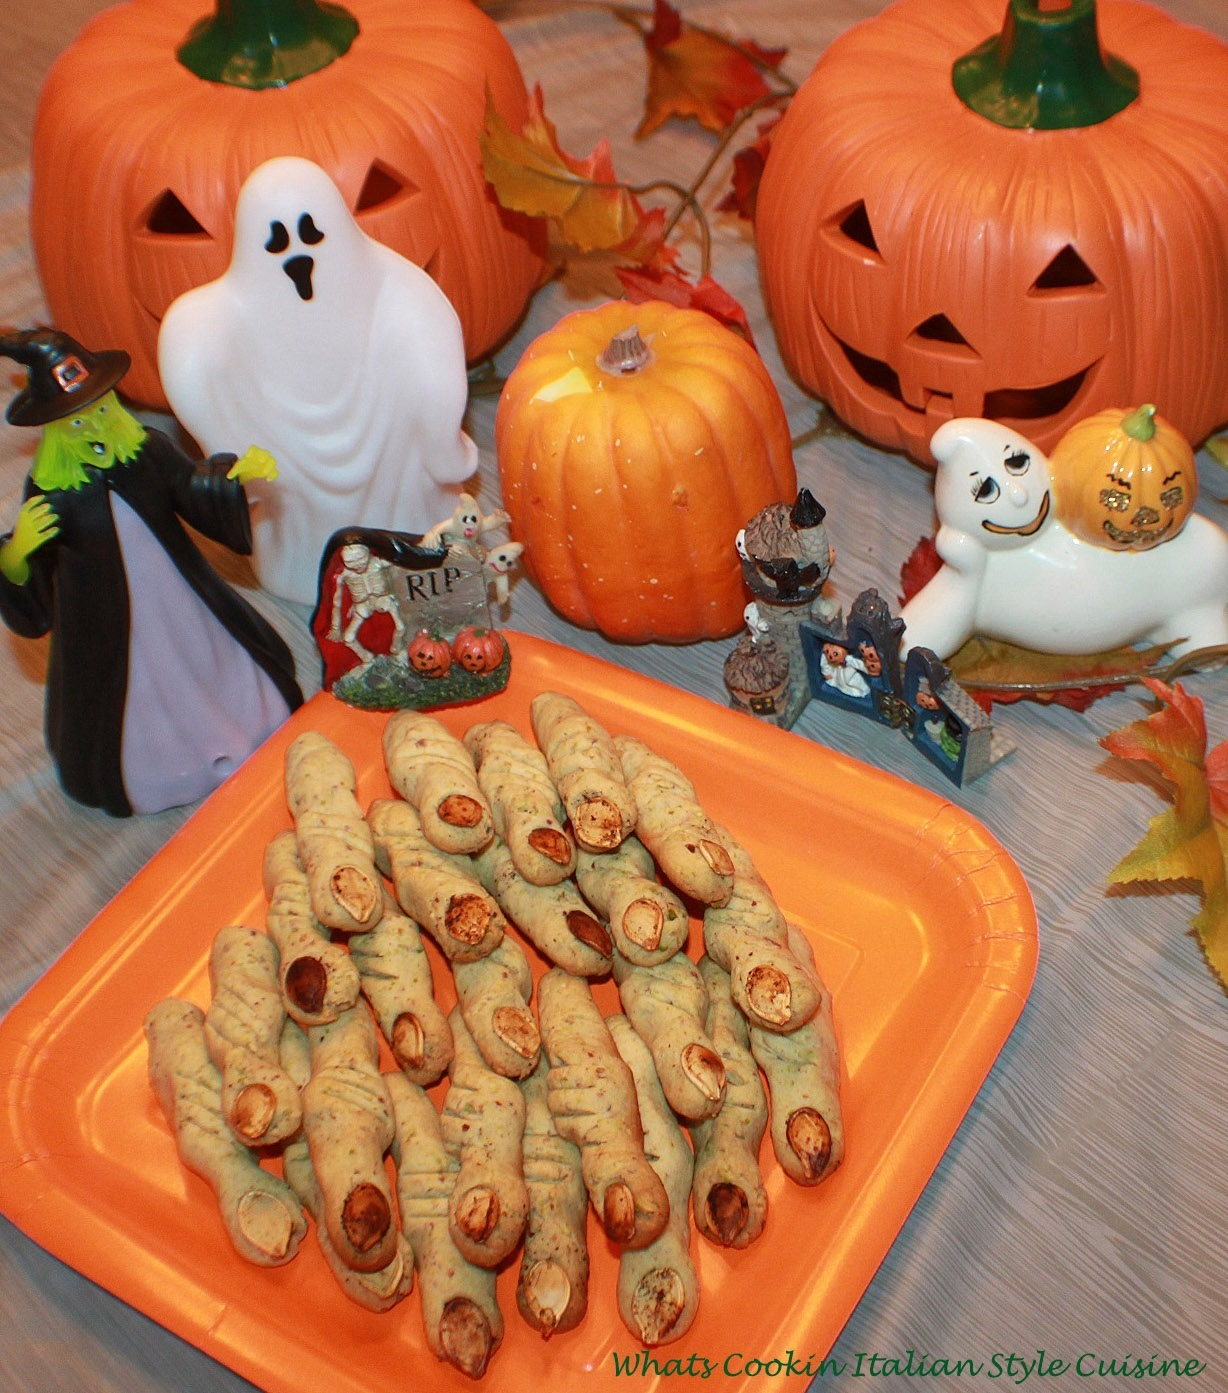 This are pistachios cookies molded into witches fingers for a Halloween party with a witch, ghost, pumpkins on an orange plate